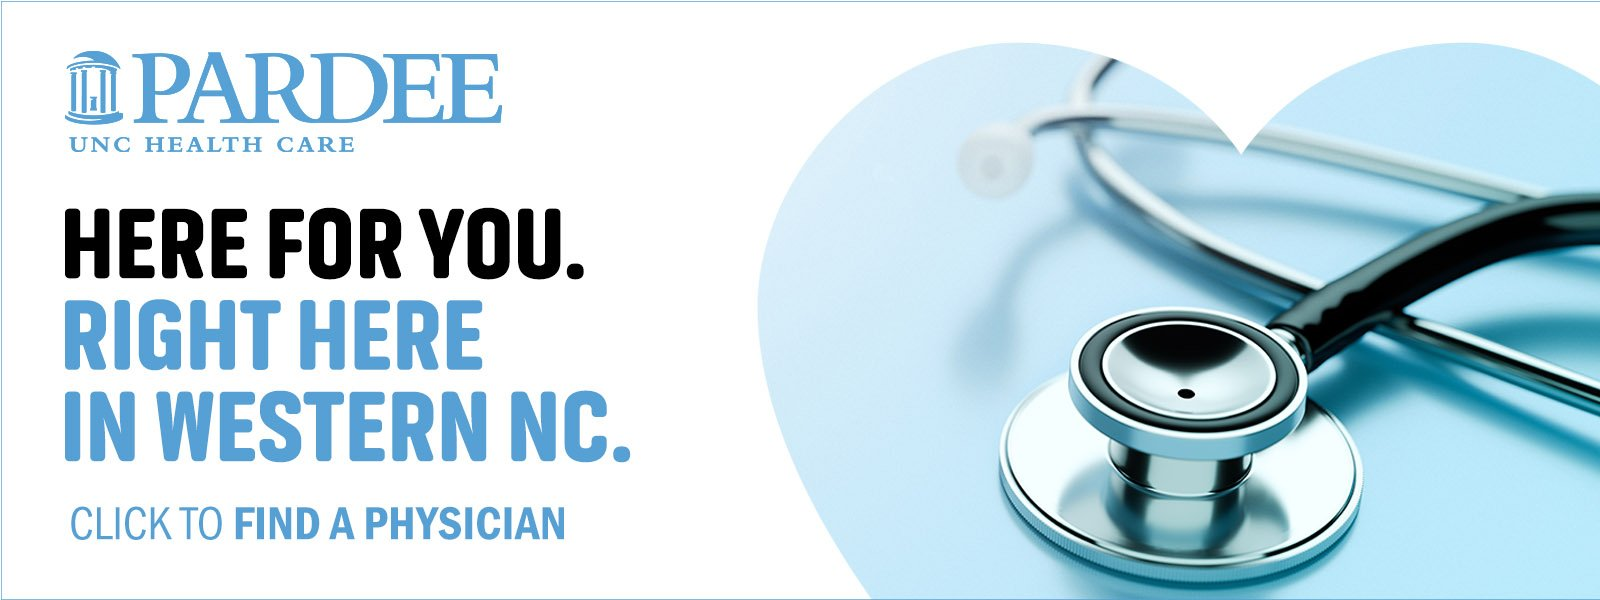 Here For You. Right Here in Western NC.